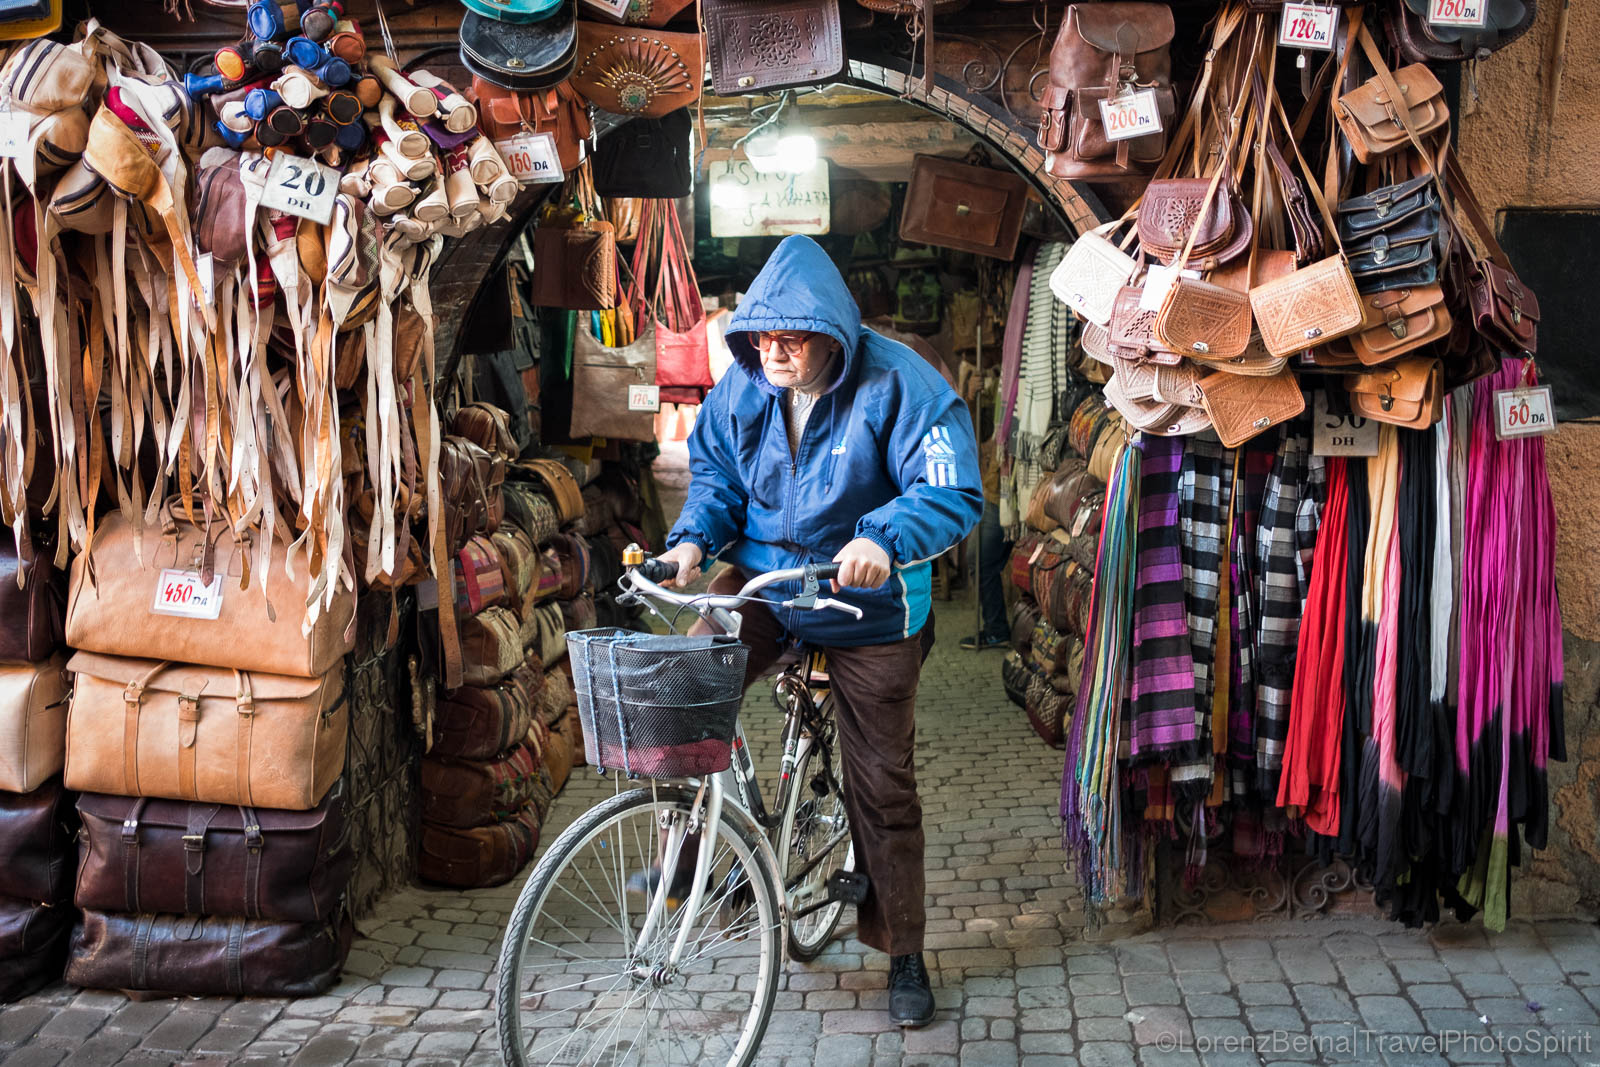 A man in front of a leather stall in a Marrakech souk